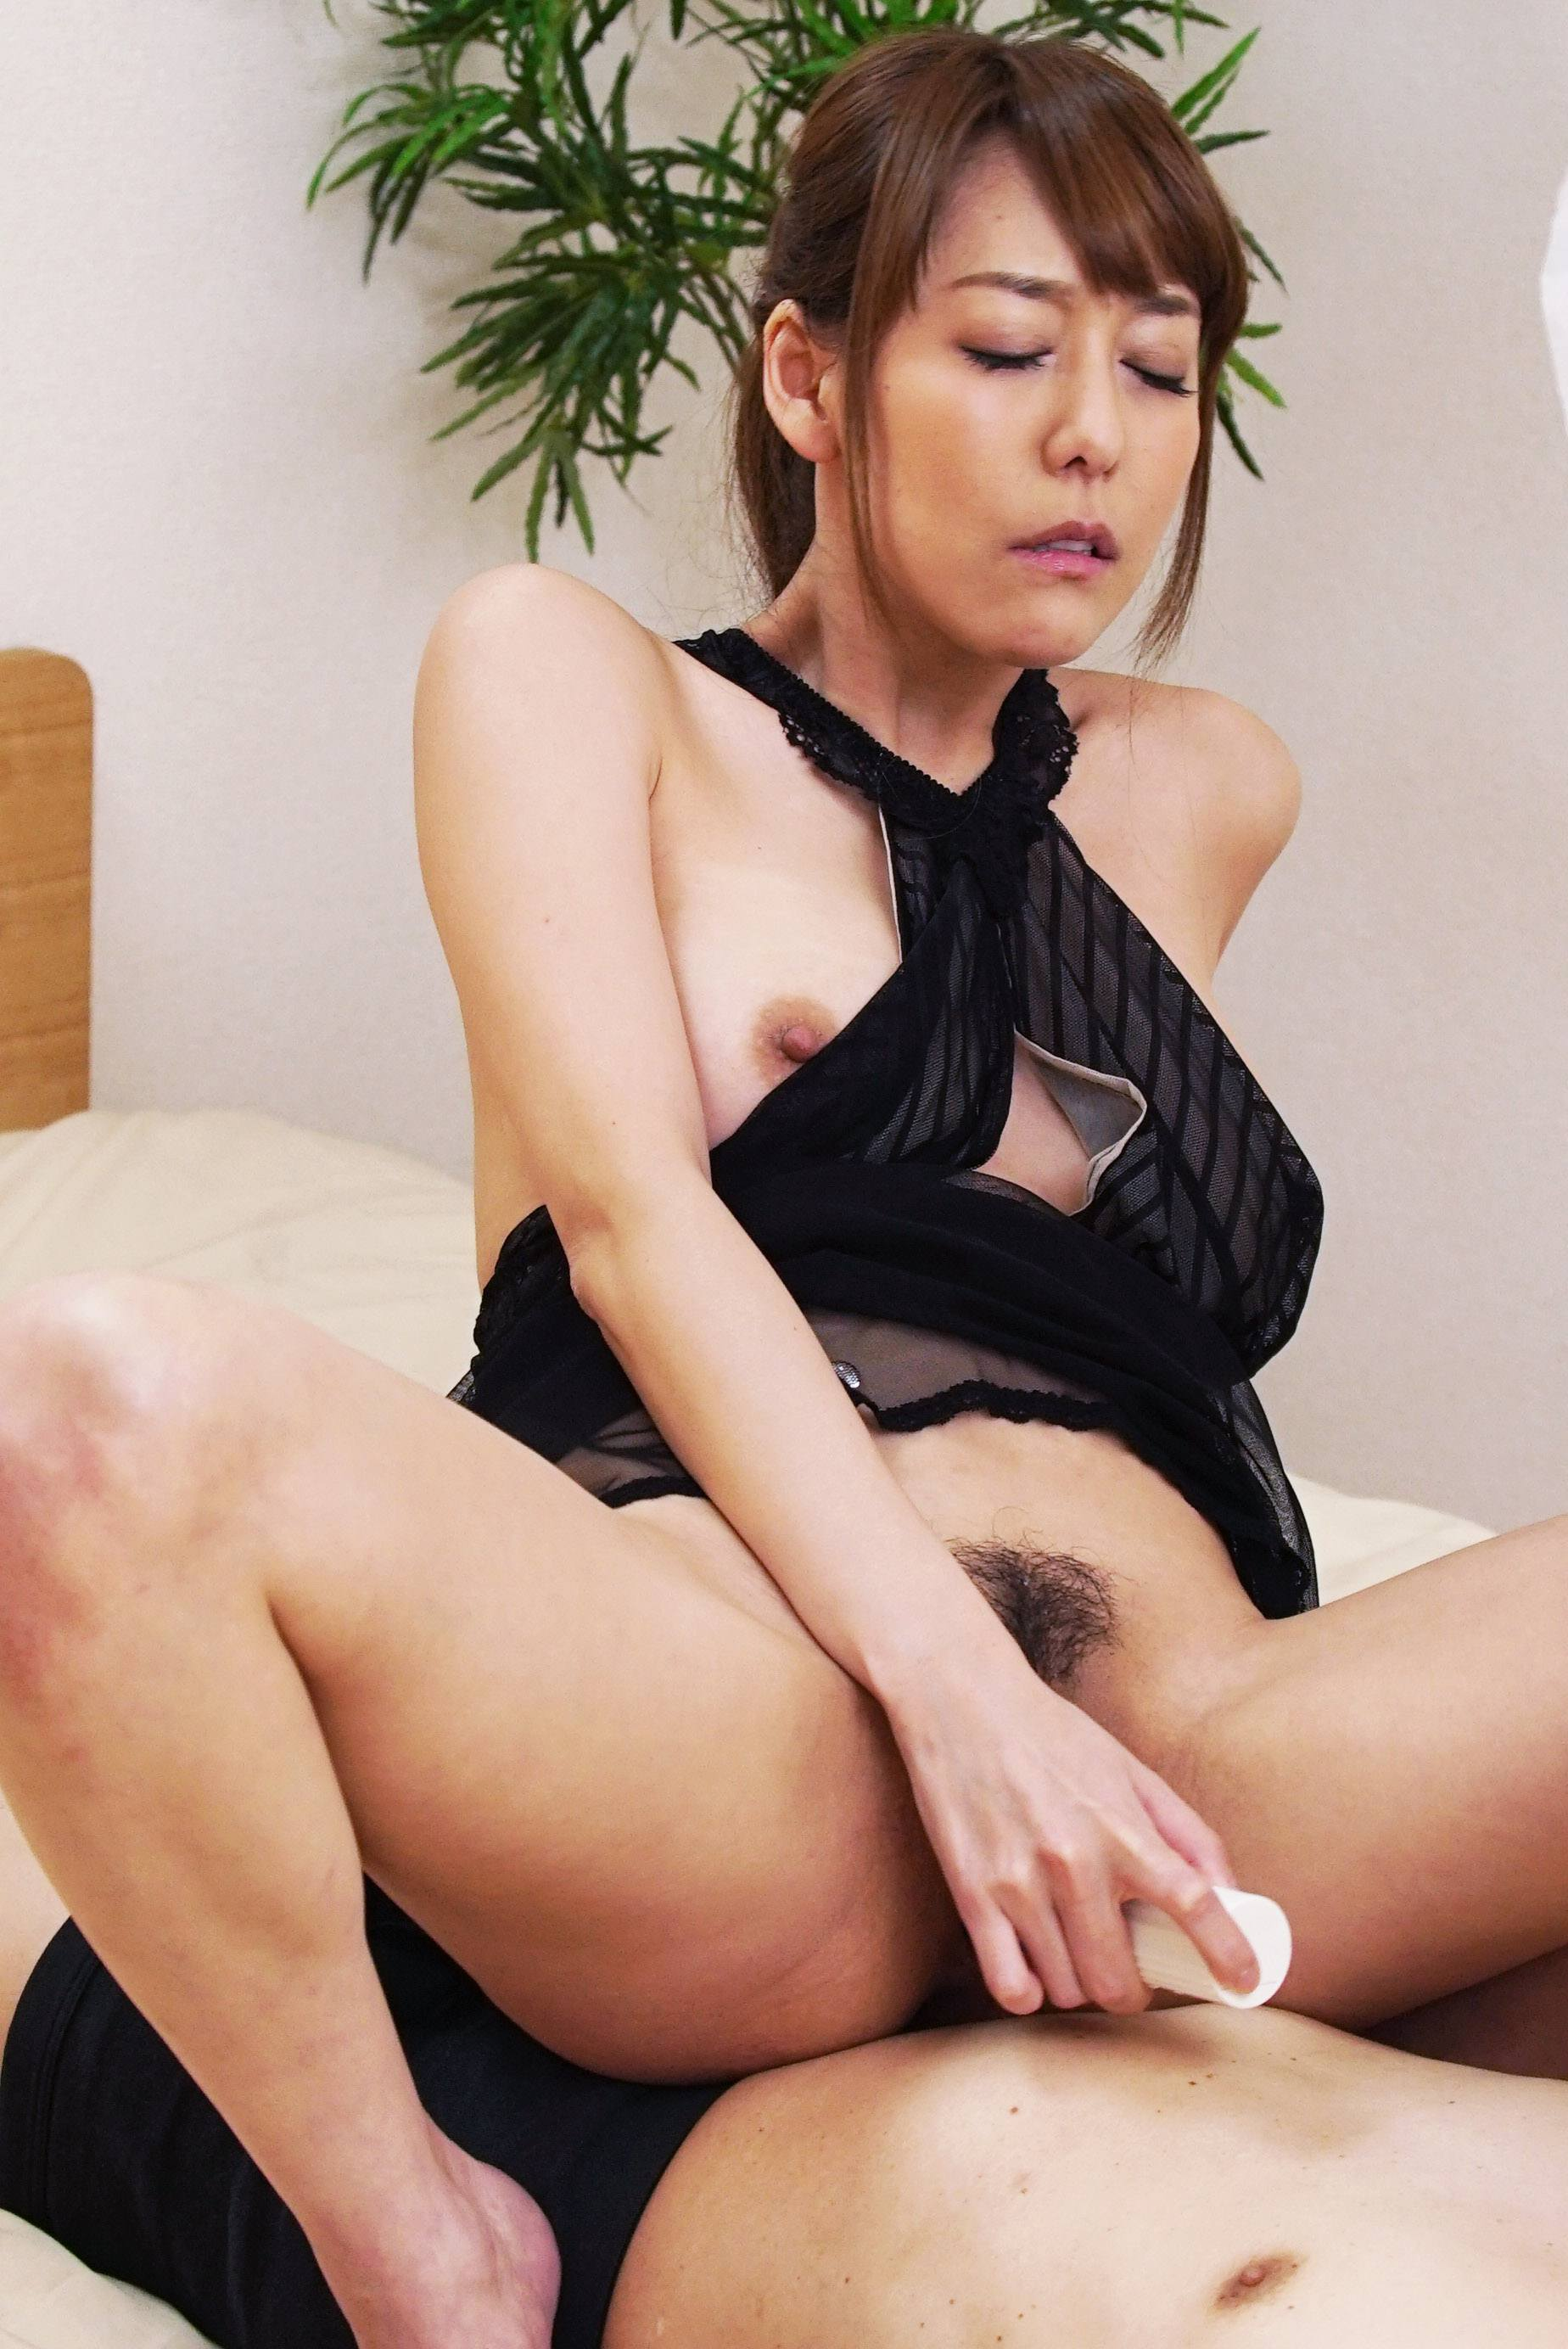 Squirting lover asagiri akari wants to make date with you 9